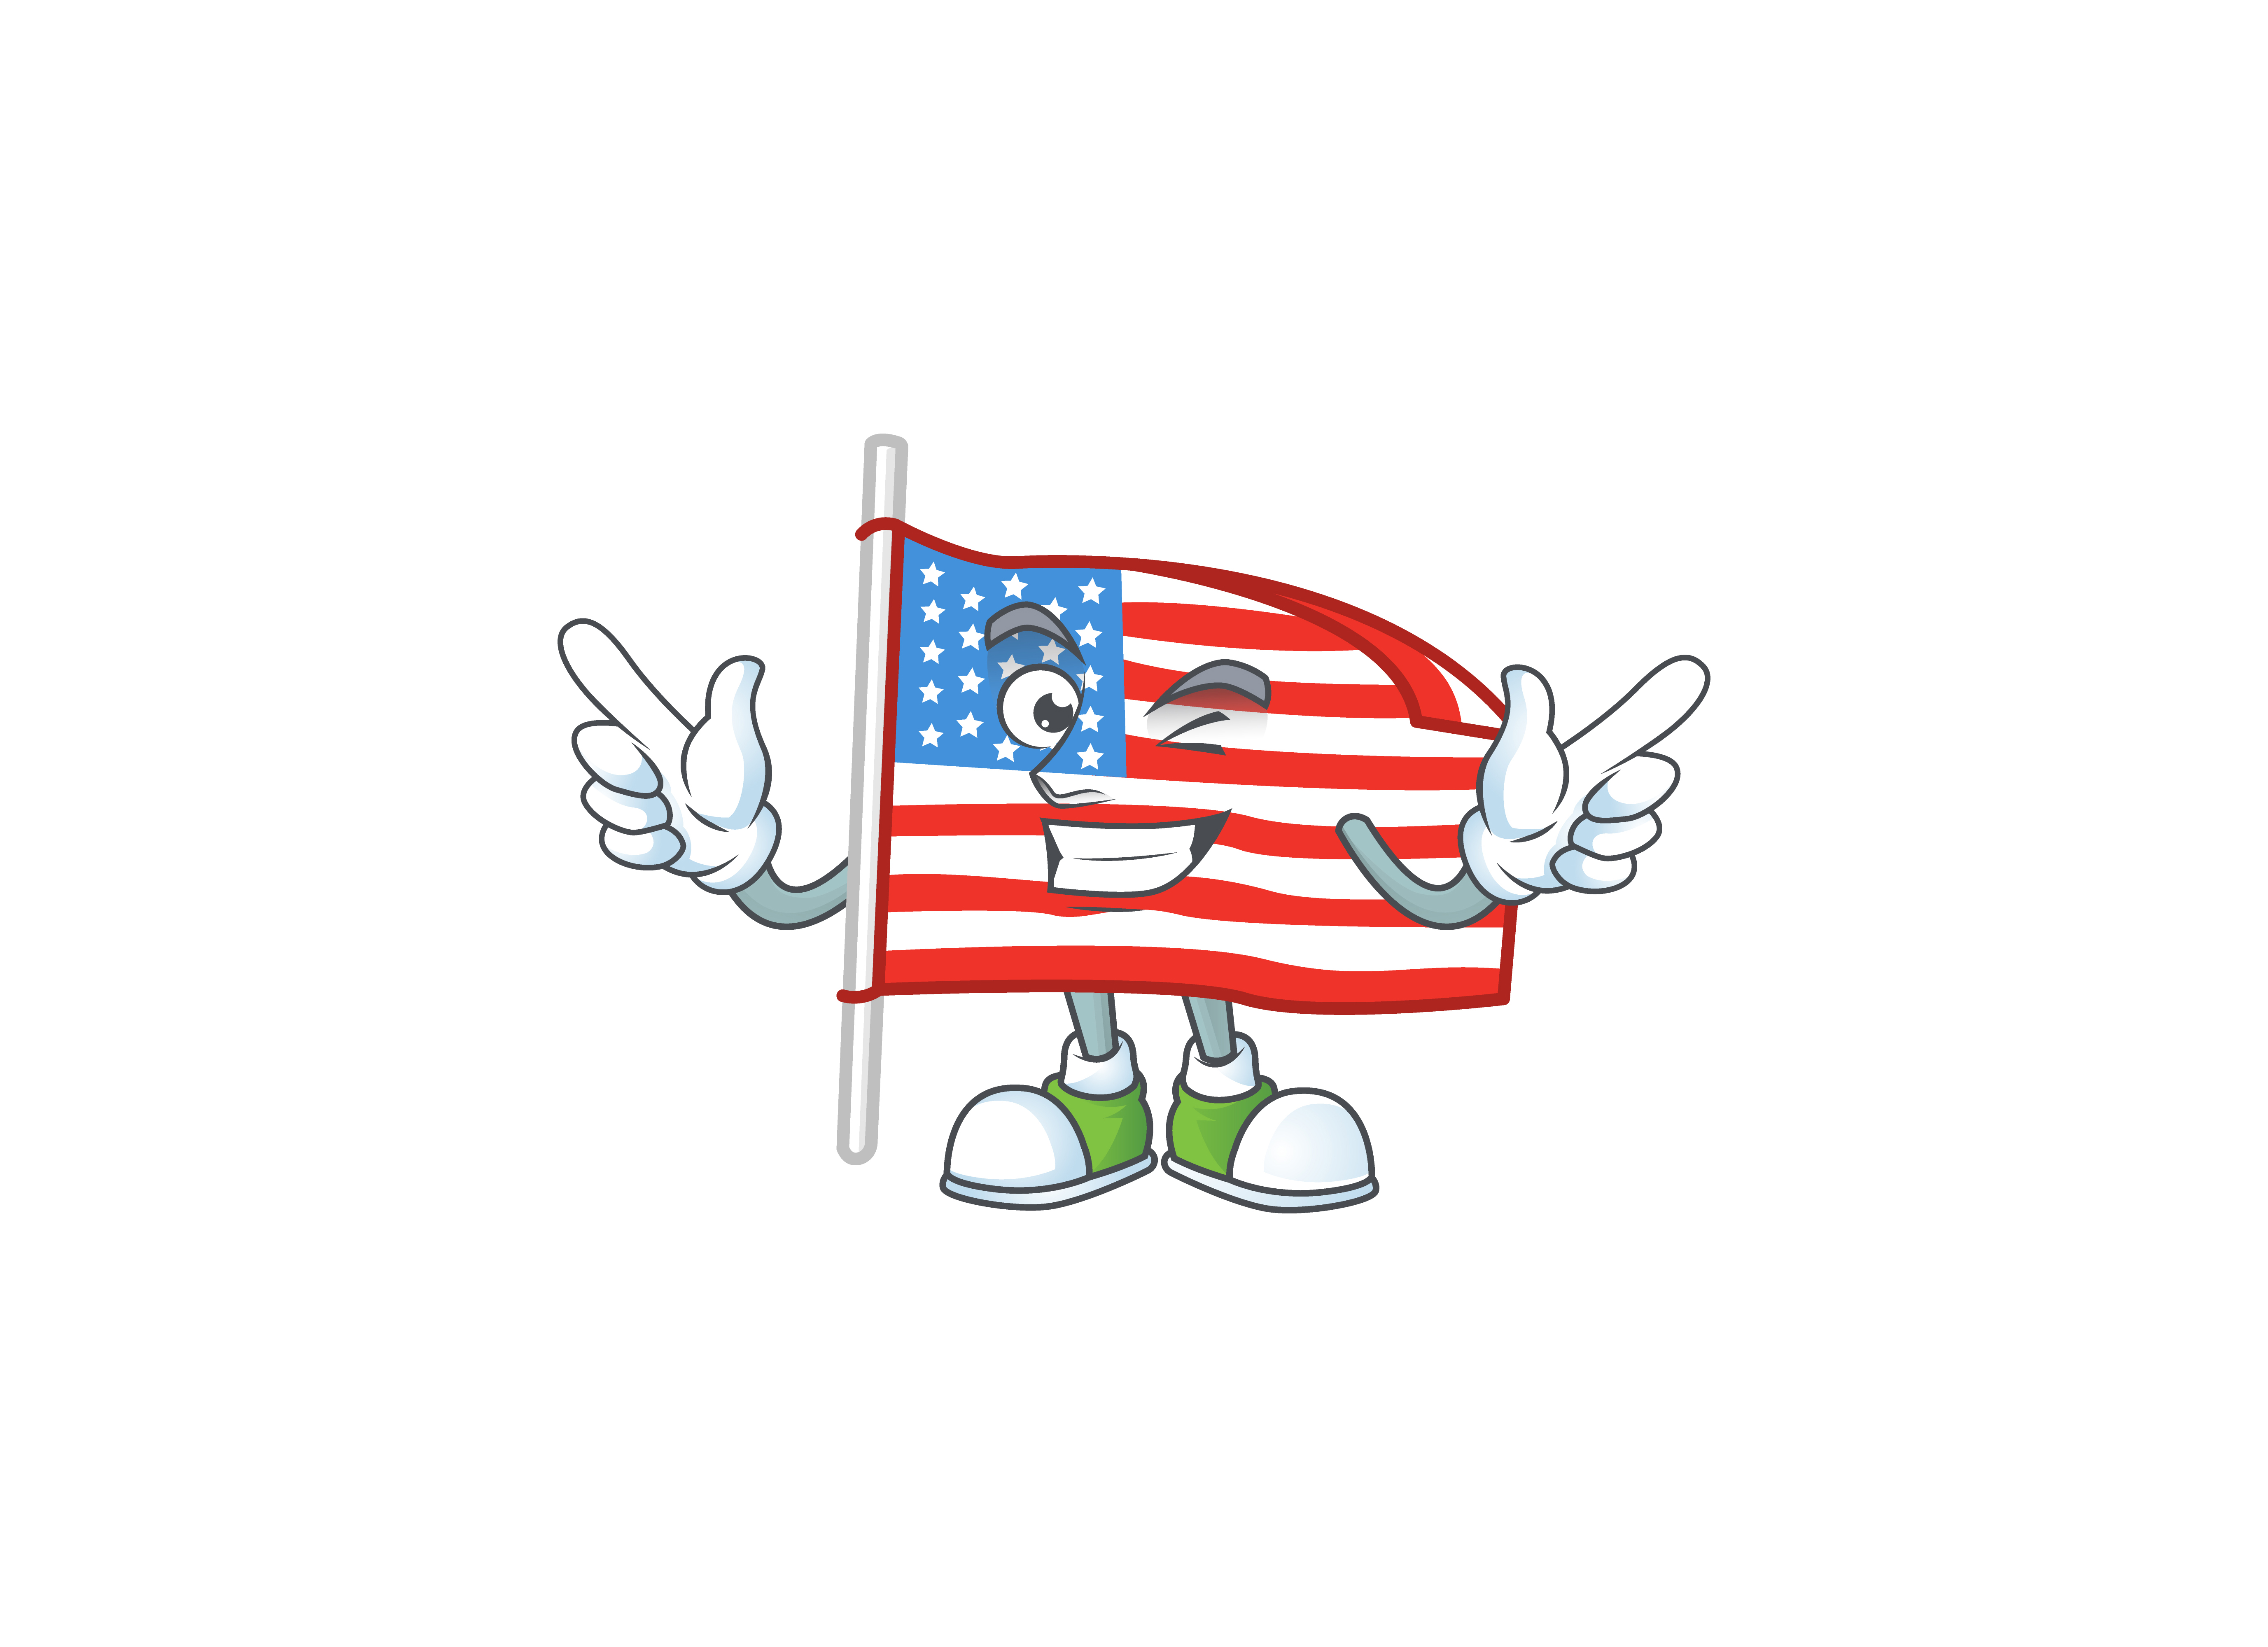 Download Free Usa Flag With Pole Cartoon Stye Graphic By Kongvector2020 for Cricut Explore, Silhouette and other cutting machines.